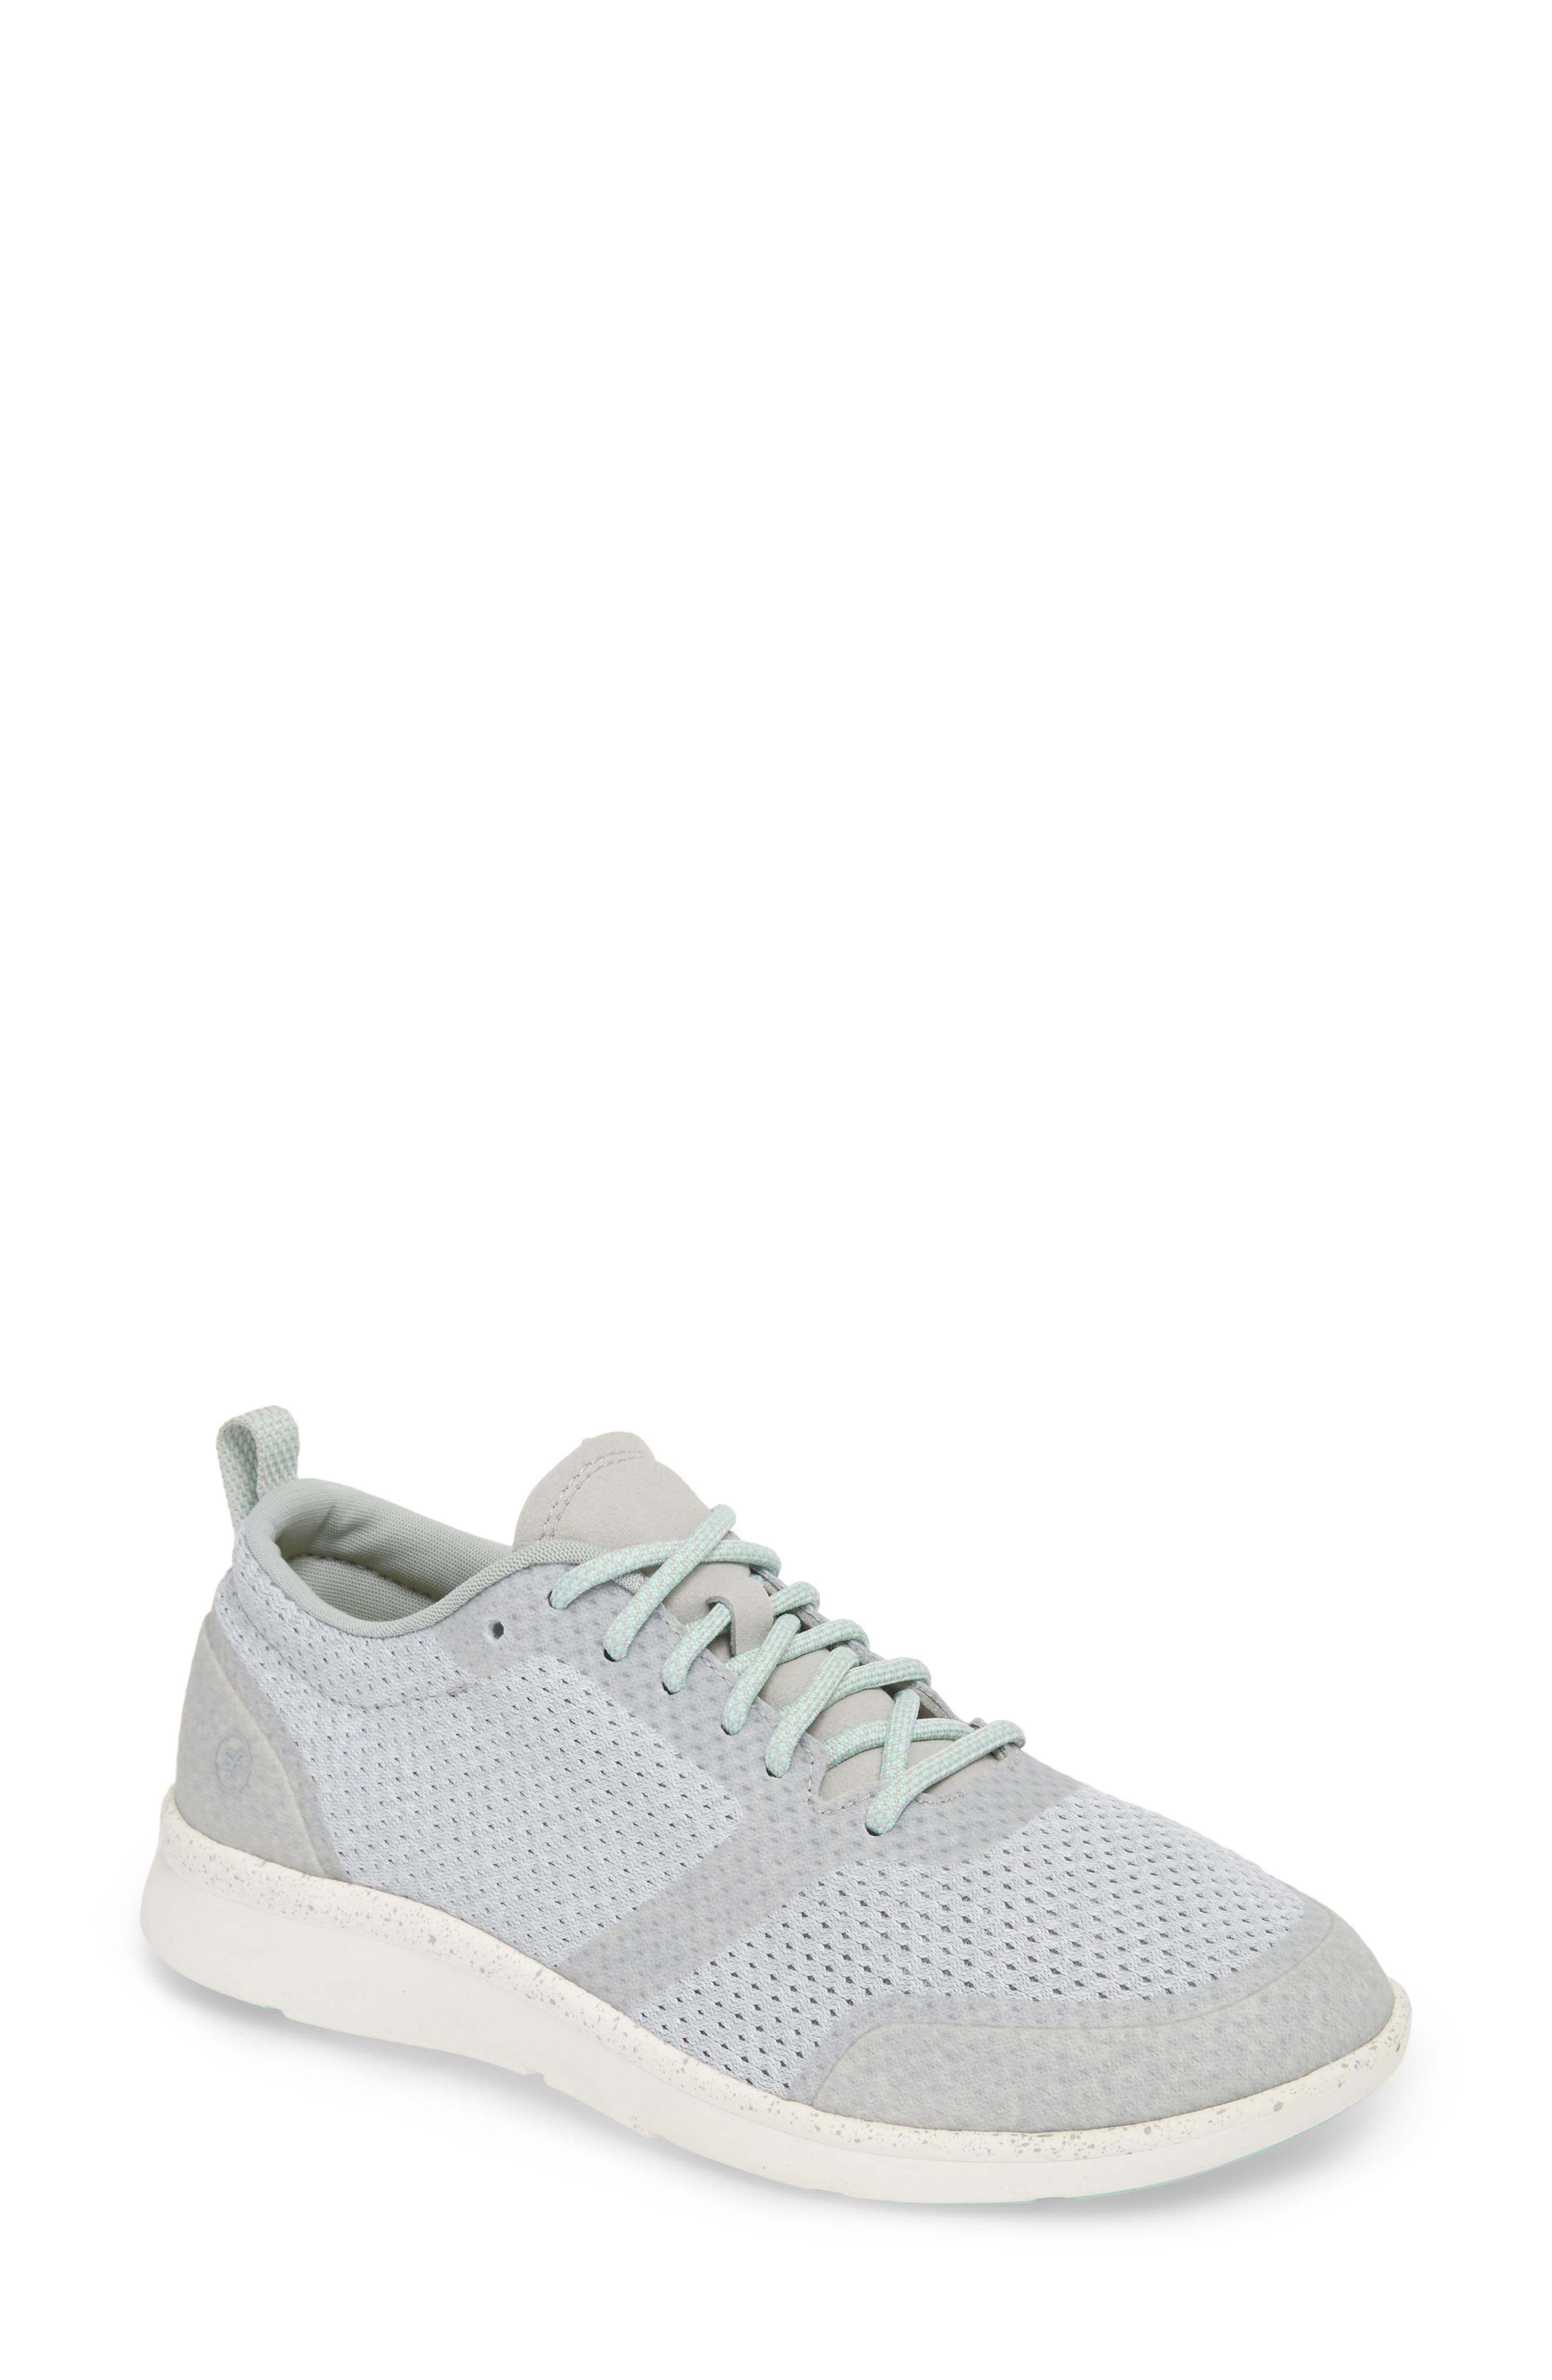 Linden Sneaker,                         Main,                         color, High Rise/ Yucca